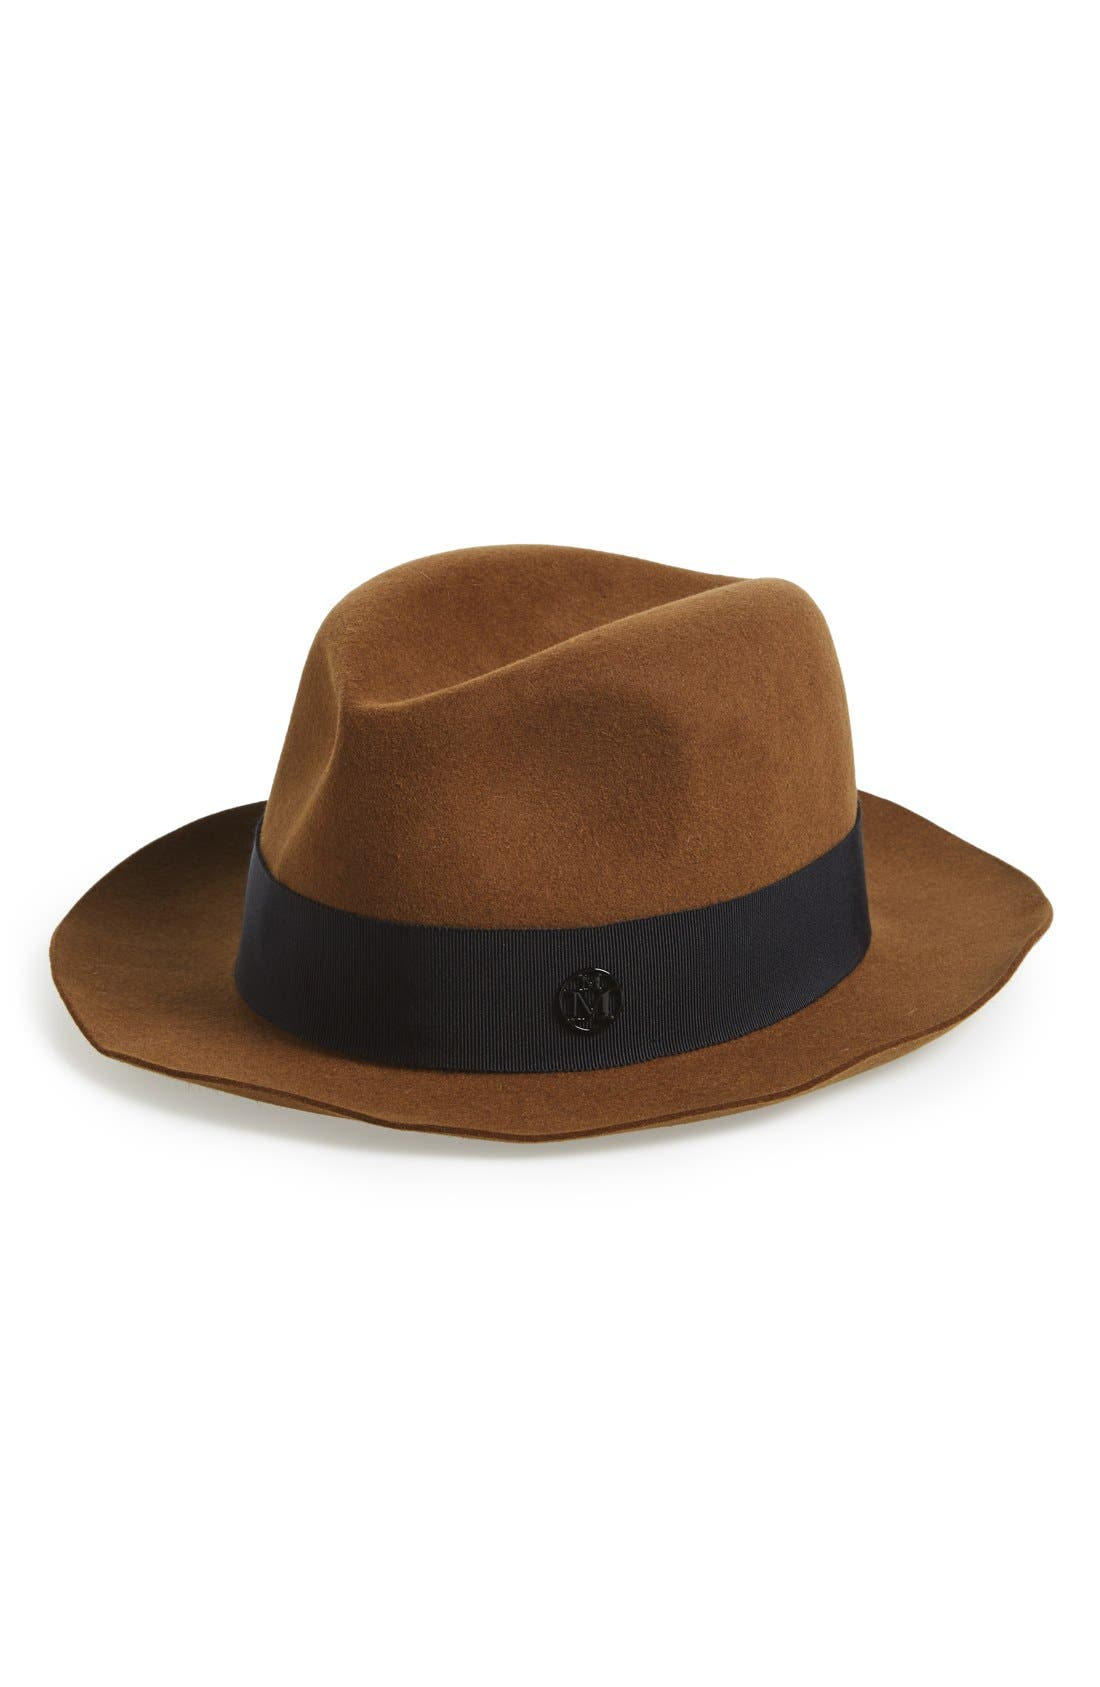 Joseph Fur Felt Hat,                         Main,                         color, 210